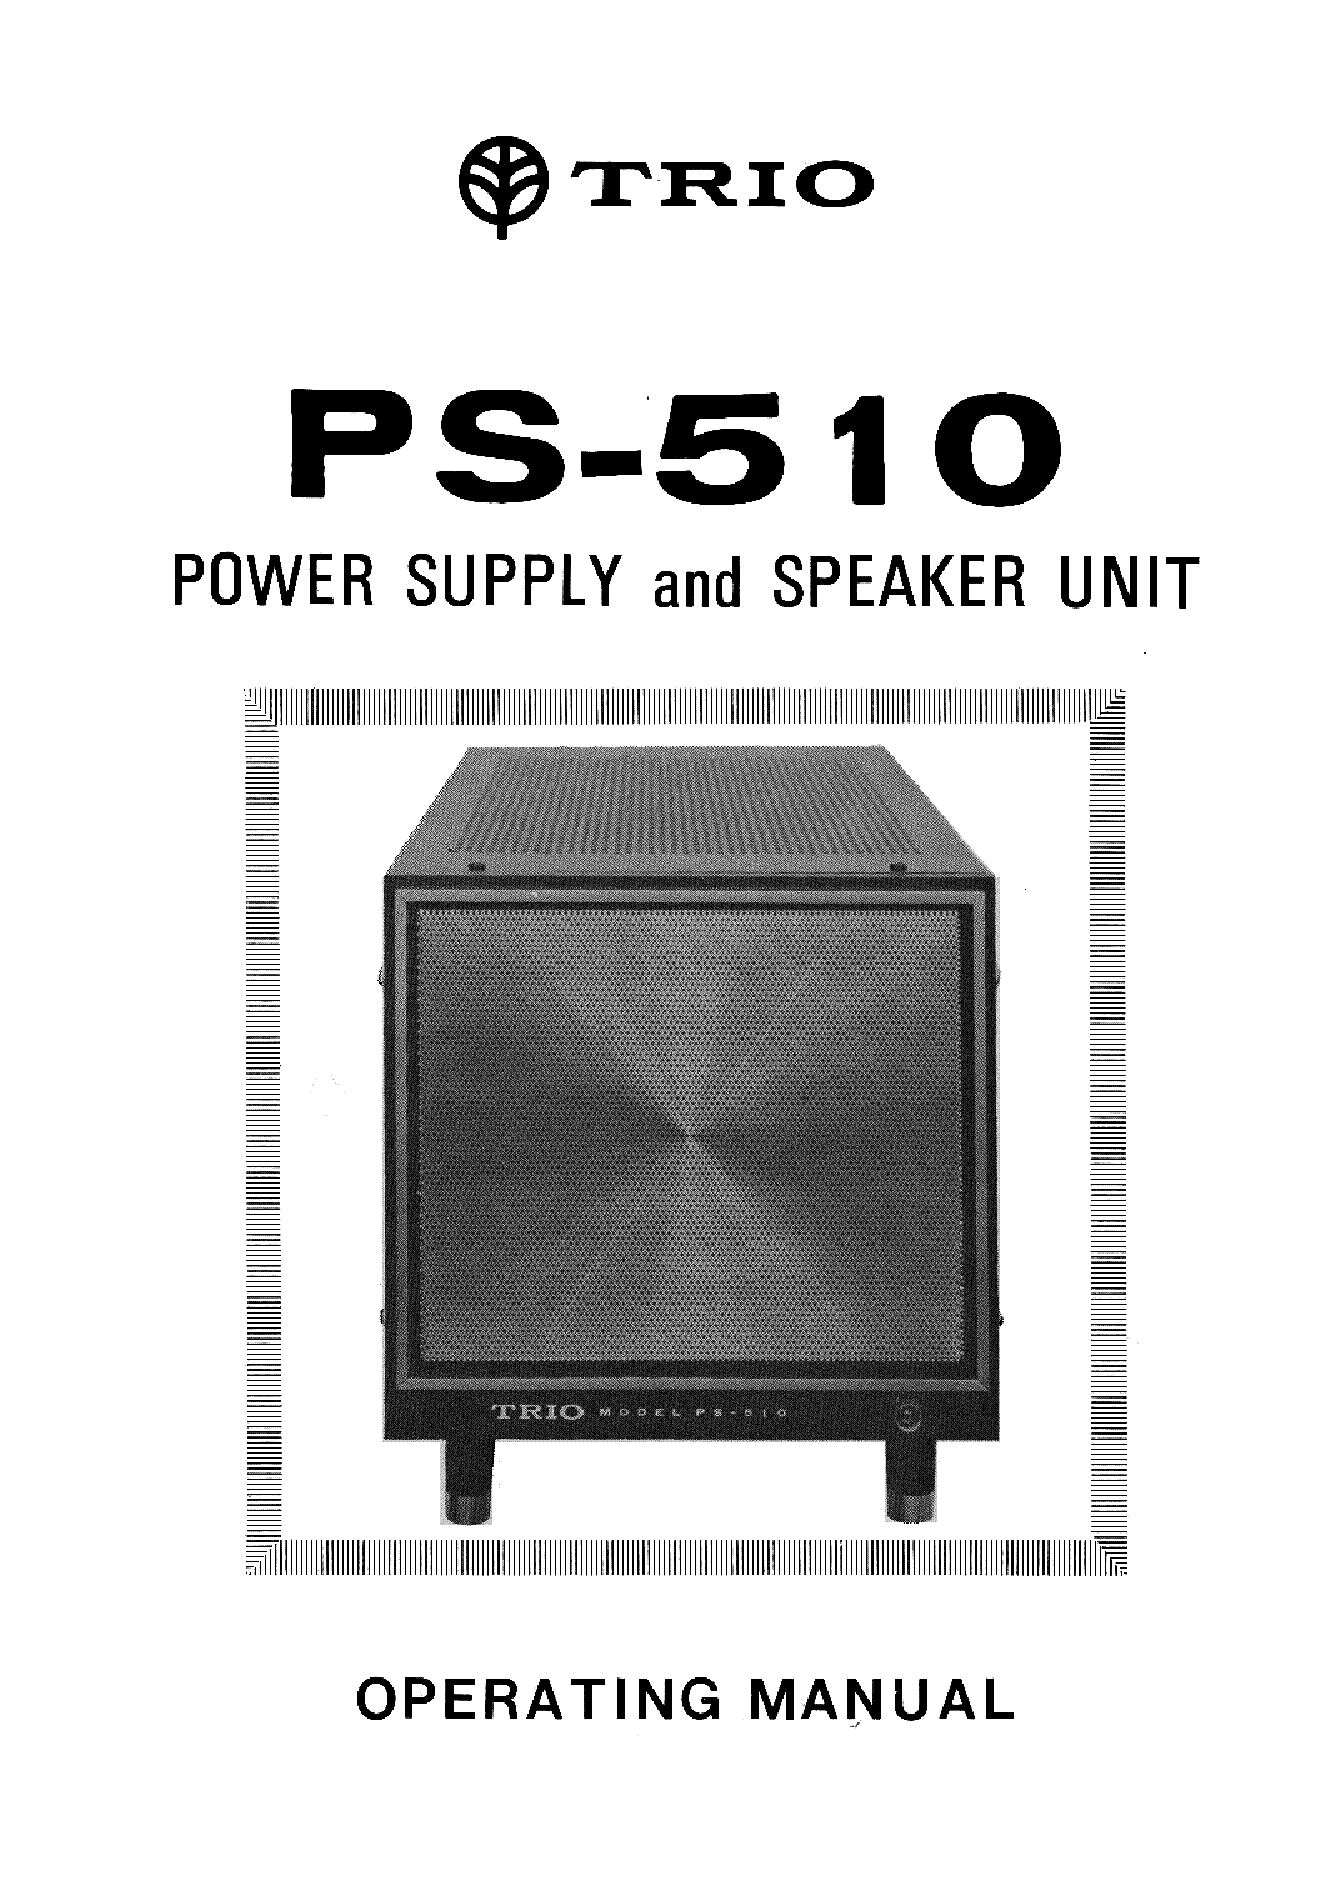 KENWOOD PS-510 SM service manual (1st page)